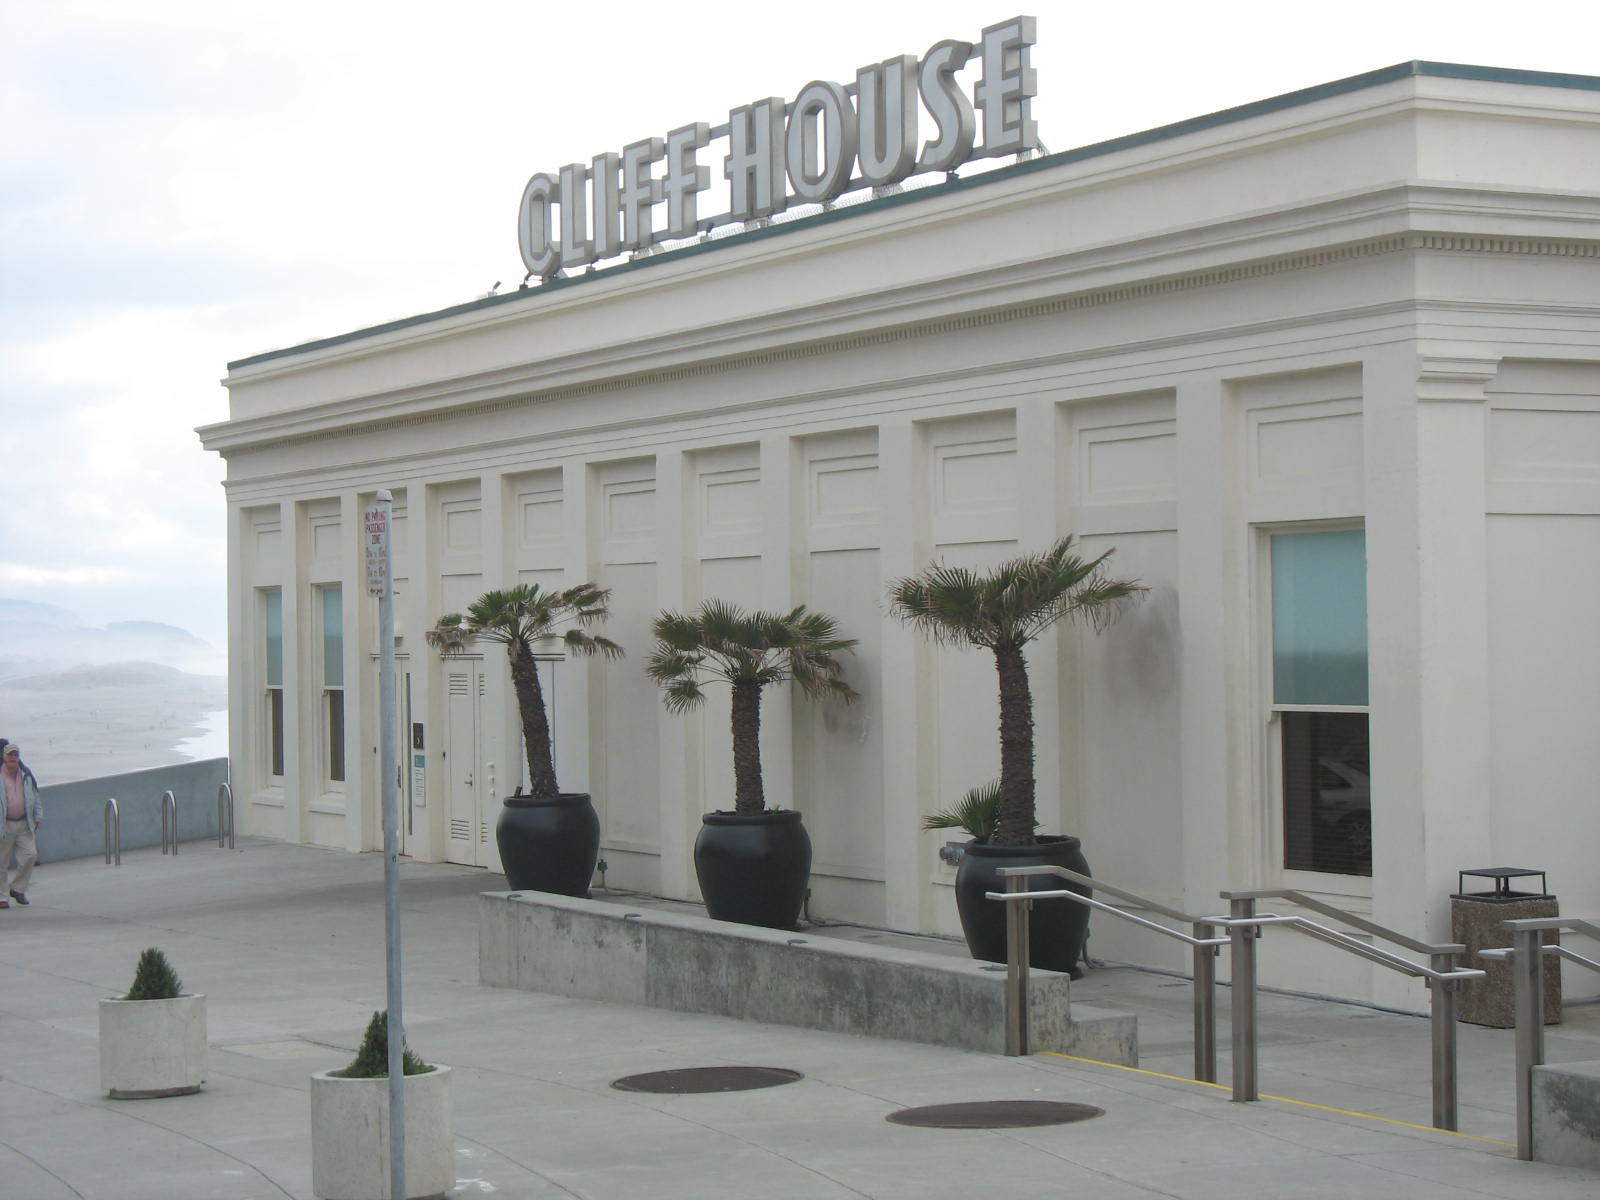 San Francisco, A History.: The Cliff House